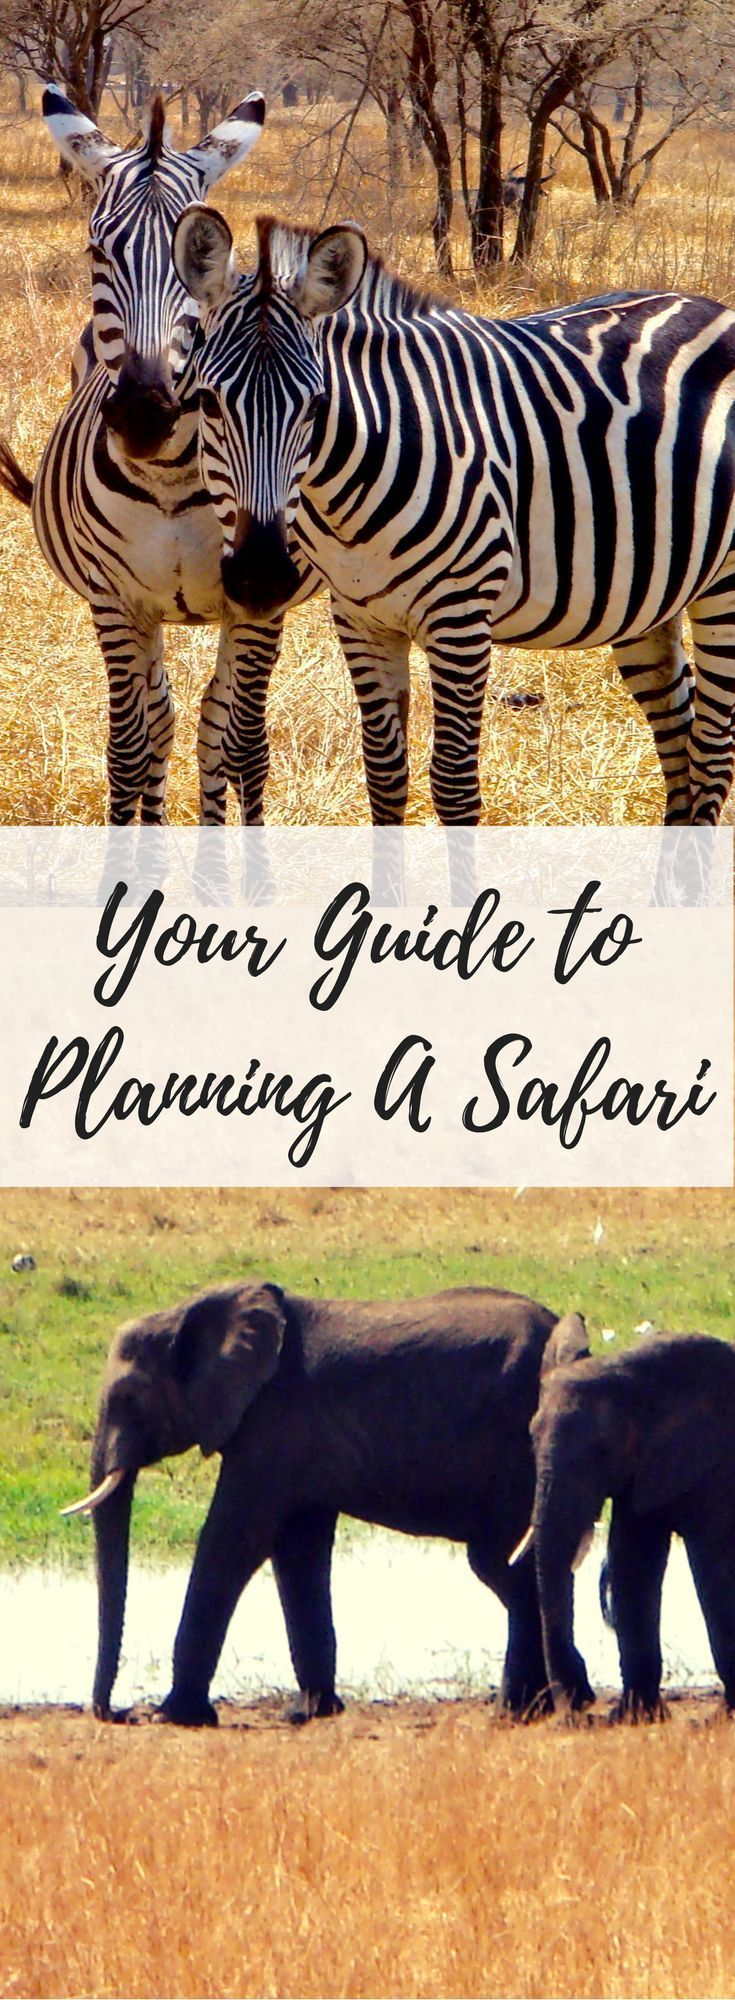 A Complete Safari Itinerary for Tanzania.  Includes the Serengeti, Lake Manyara, Ngorongoro Crater and much more